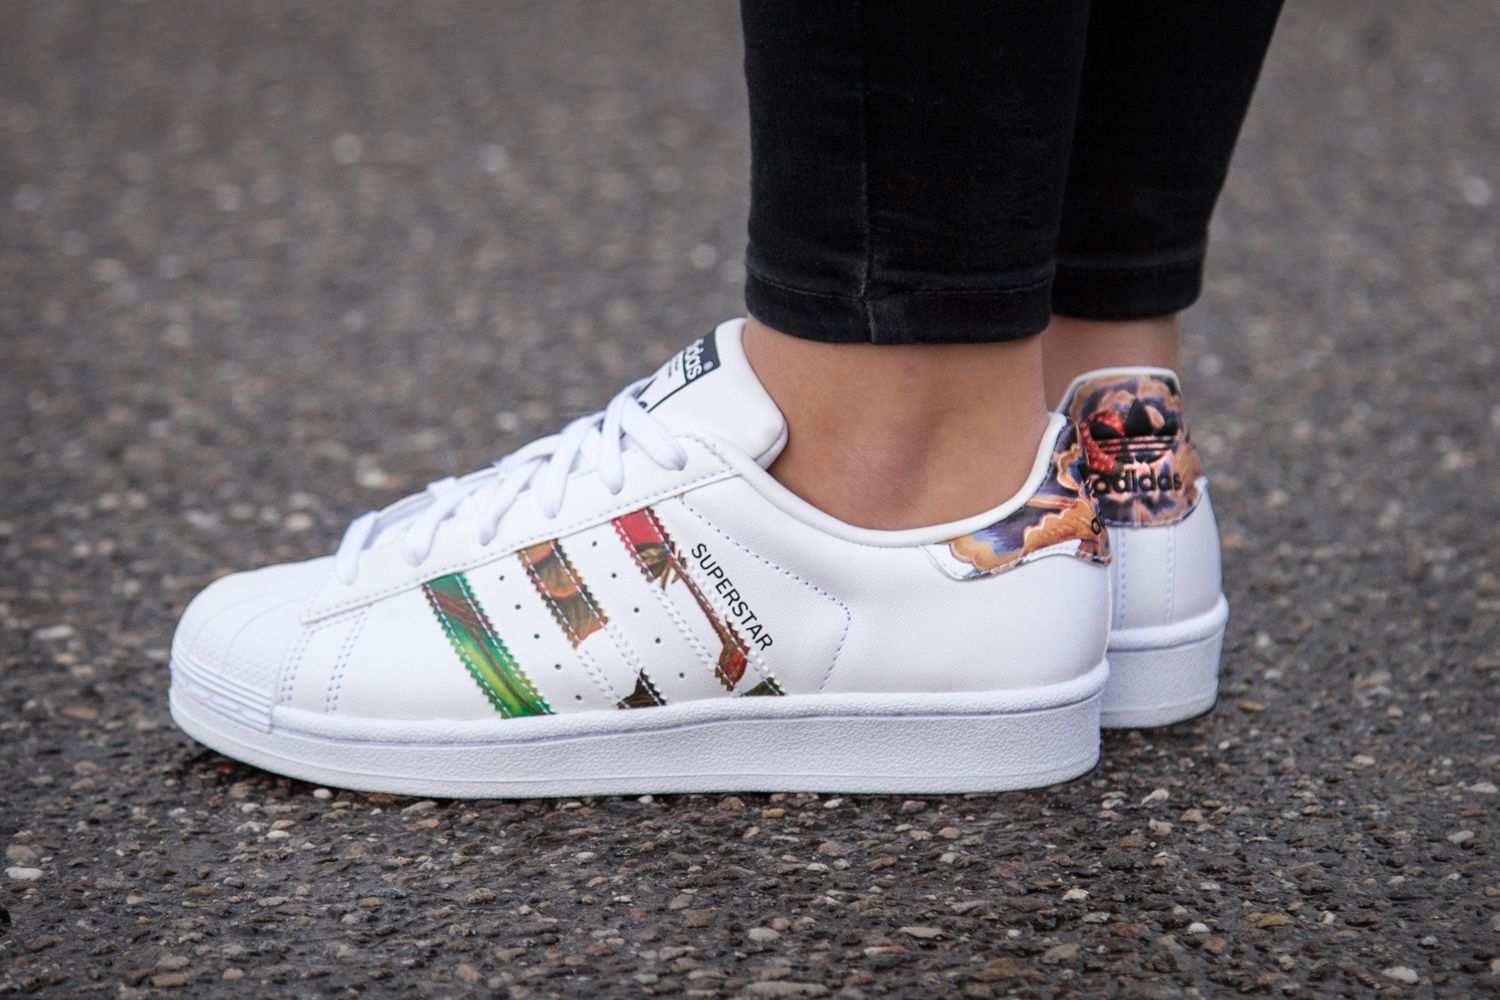 Adidas Superstar Mit Blumenprint Adidas Superstar Trend Fashion Schuhe